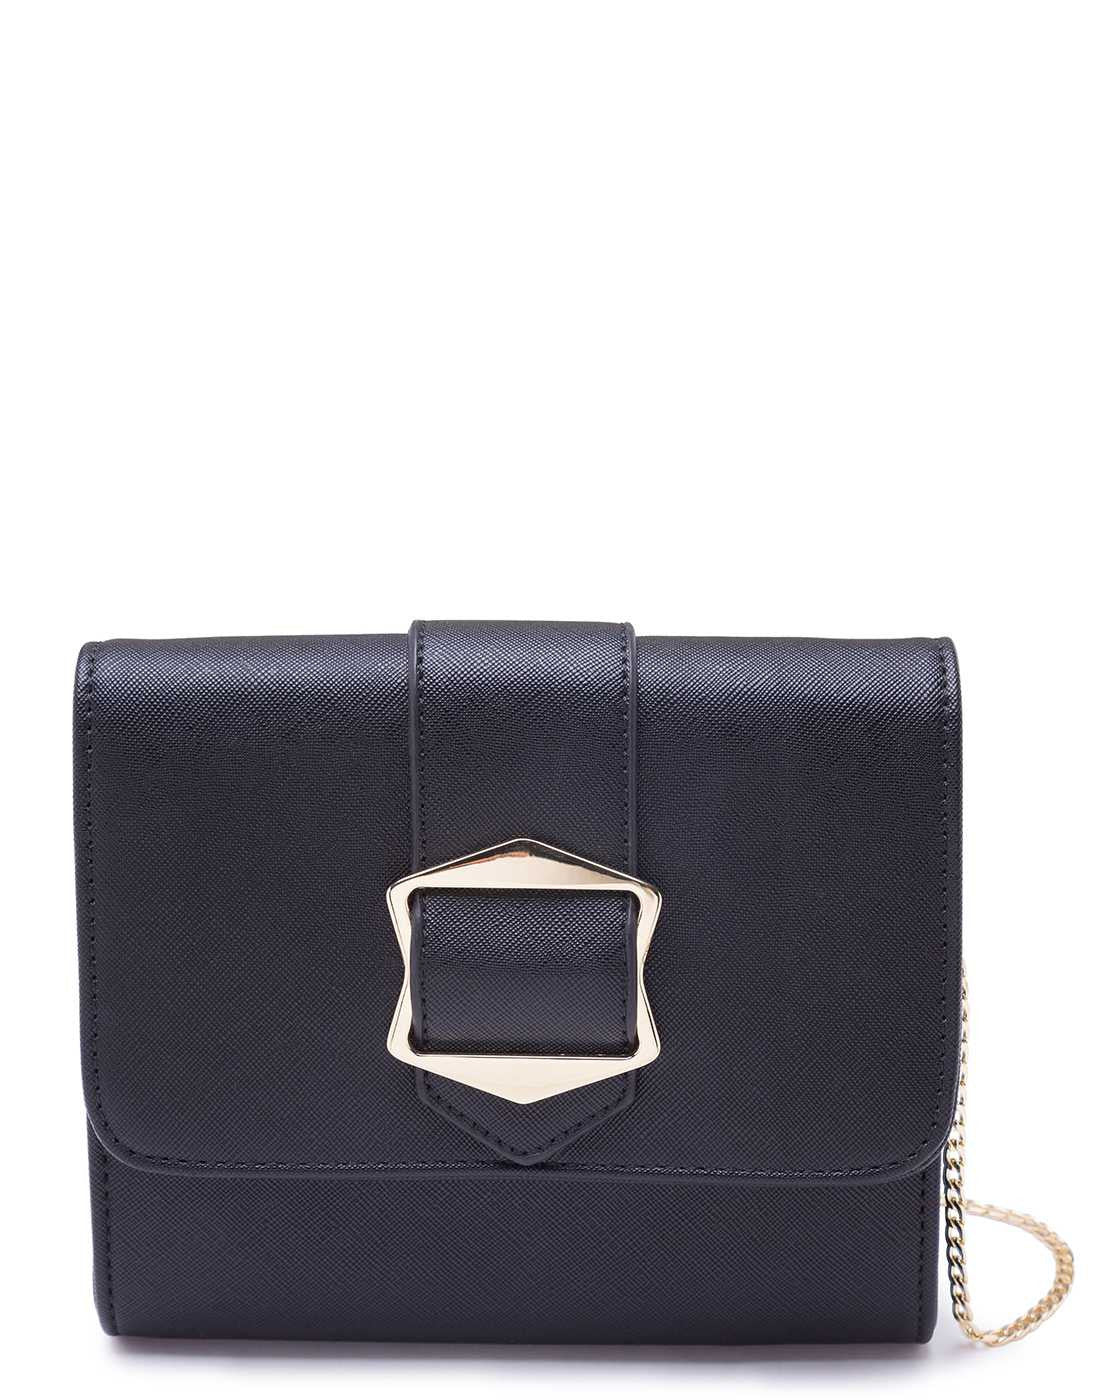 Black Party Clutch with Buckle Detail